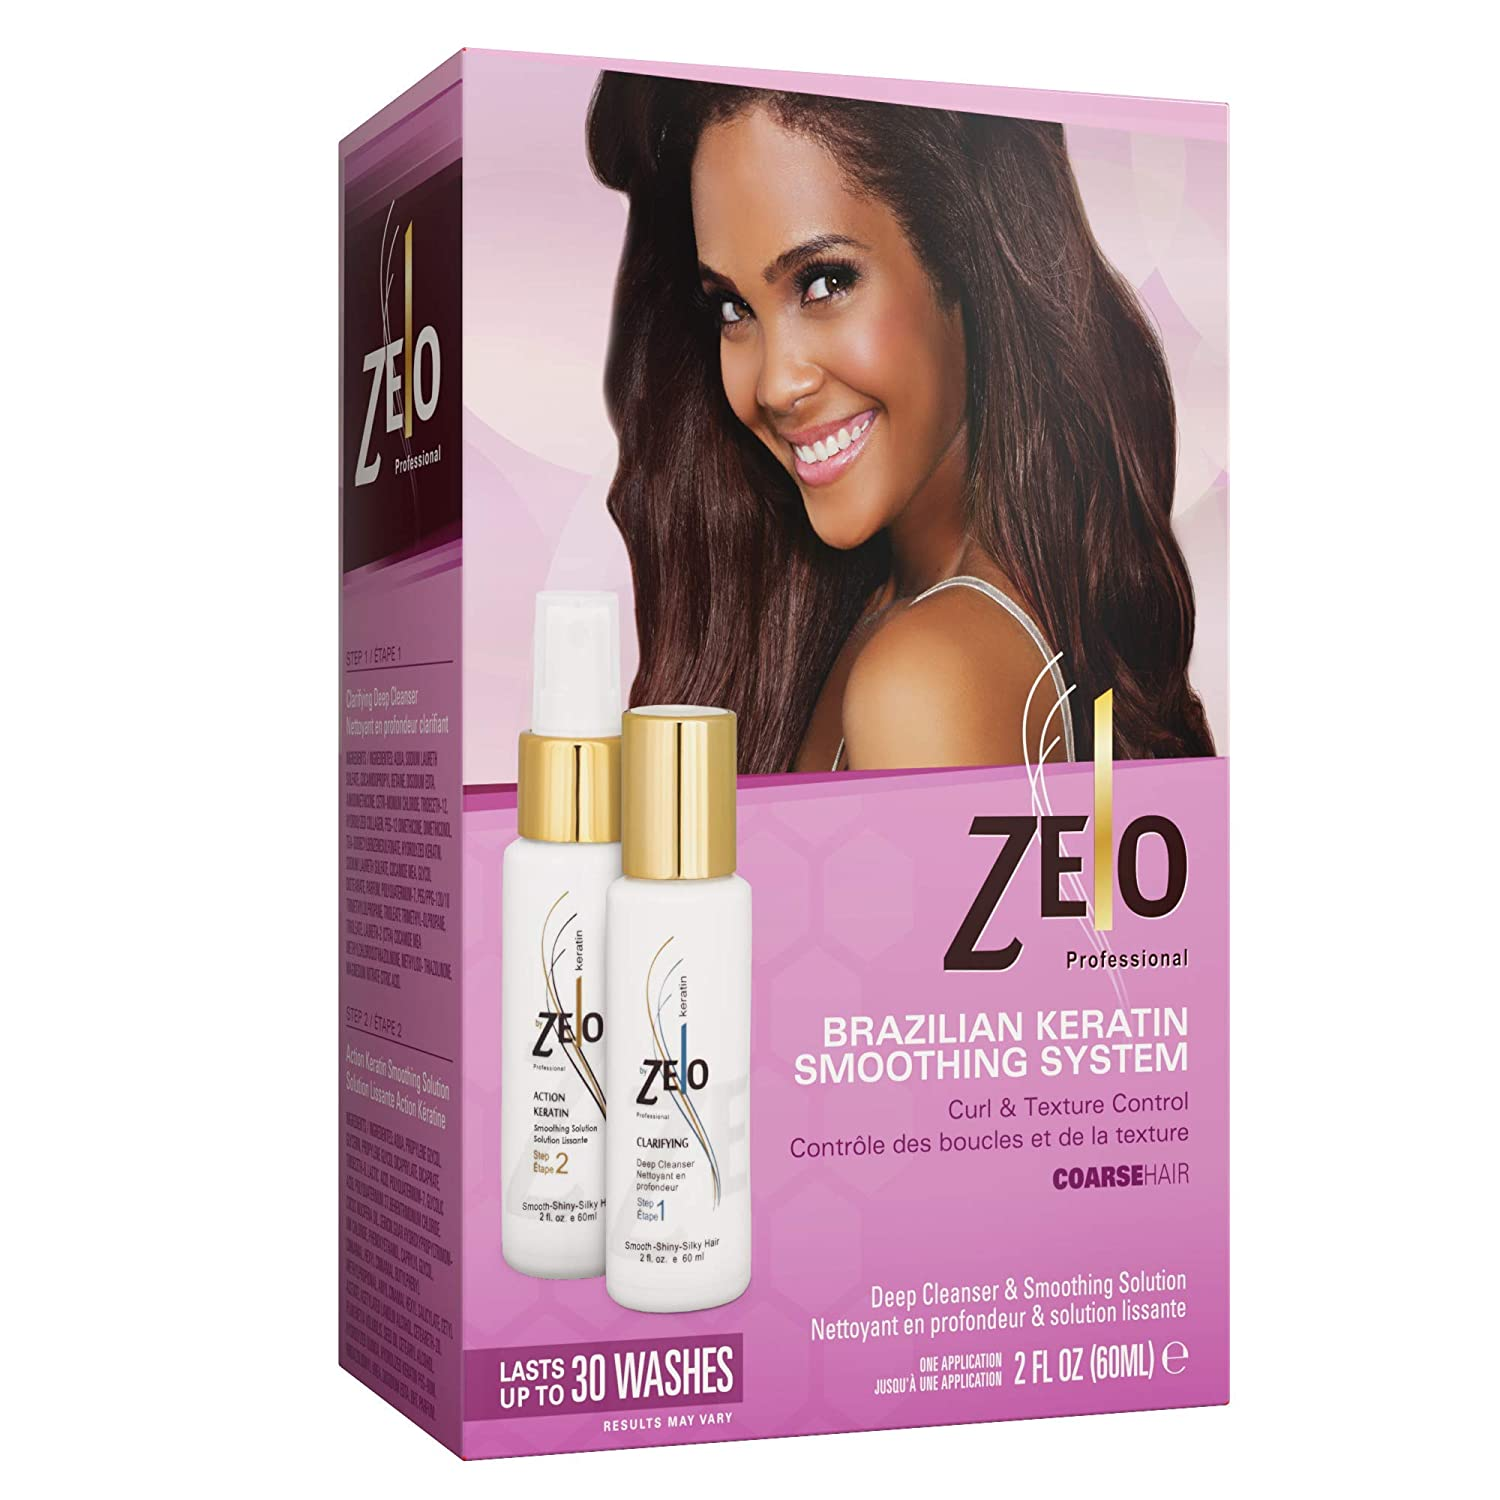 ZELO Smoothing Brazilian Keratin Hair Treatment Kit With Muru-Muru, Cupuacu, Carite Butter and Inca oil - Naturally Eliminates Frizz, Relax & Straightens Hair Without Harmful Chemicals